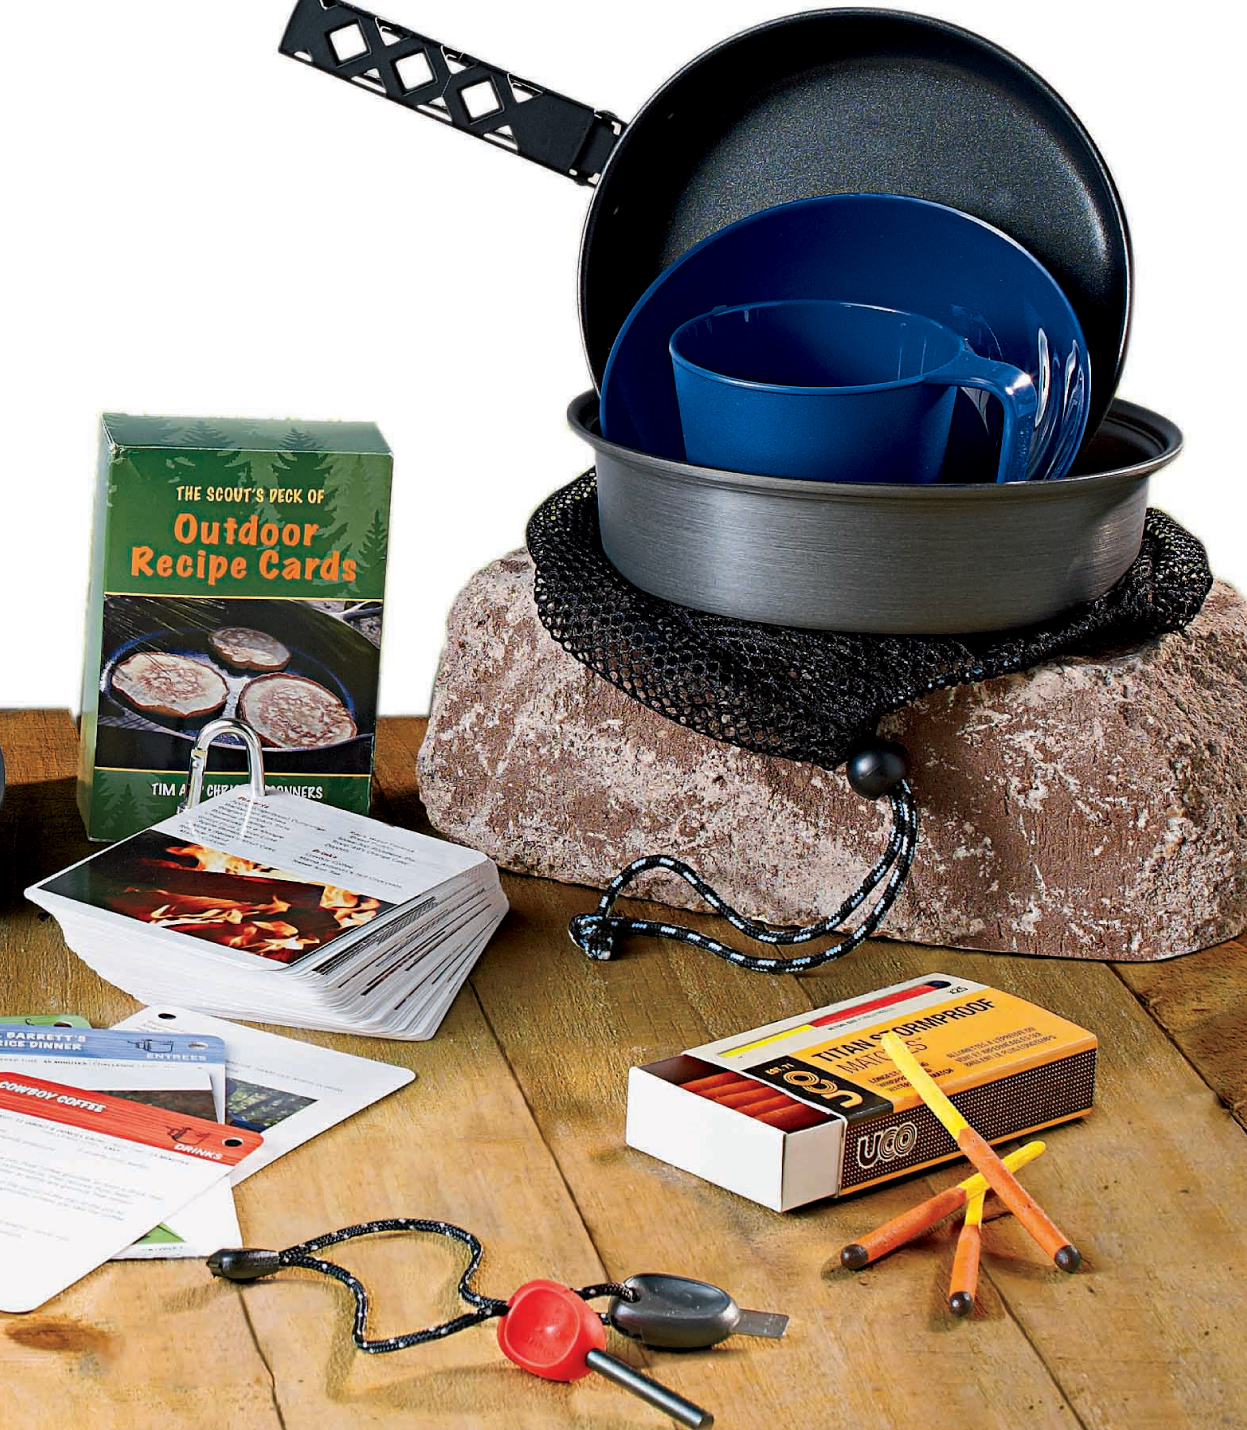 Camp Kitchen - Camp Cookware, Outdoor Recipes